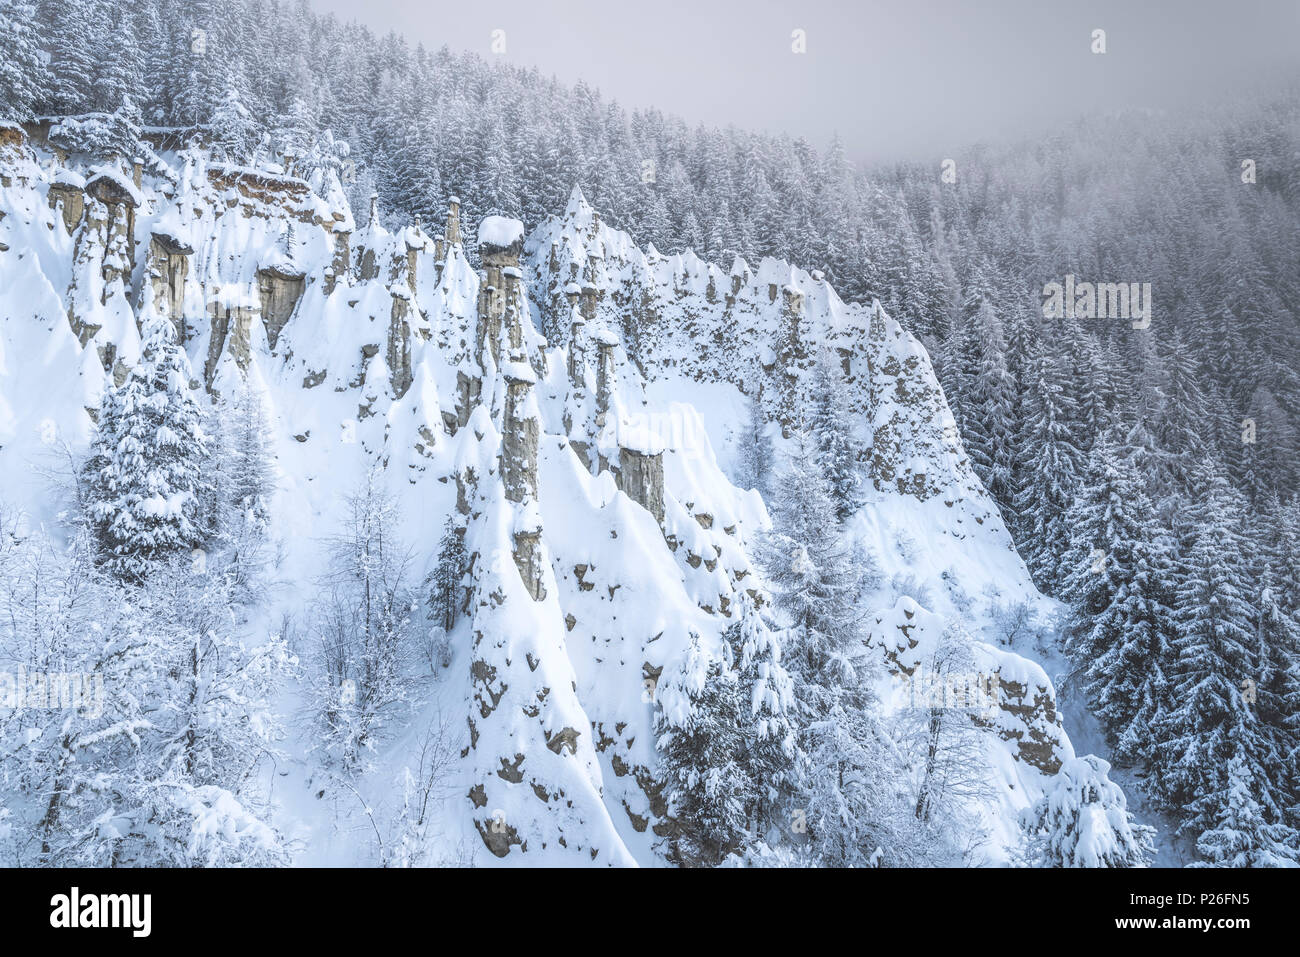 Perca/Percha, province of Bolzano, South Tyrol, Italy, Europe. Winter at the Earth Pyramids - Stock Image